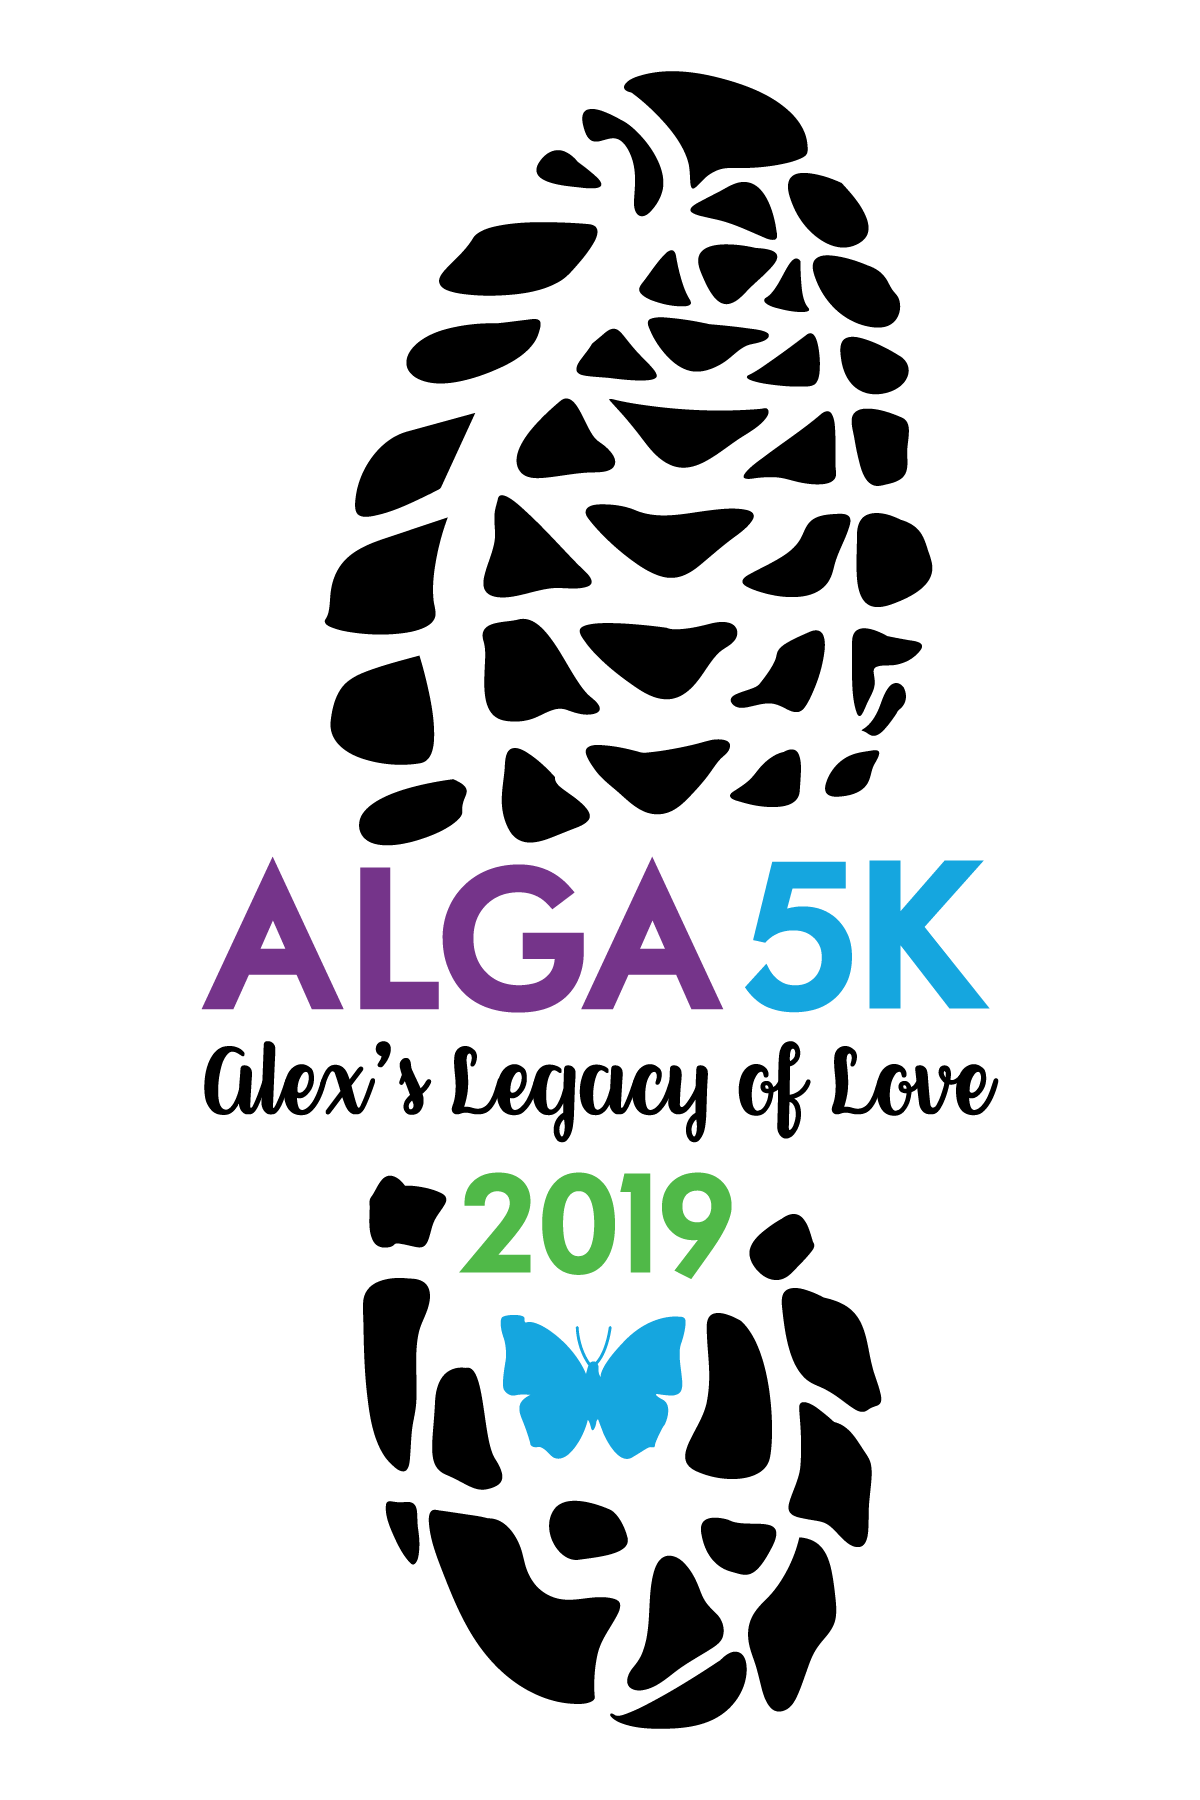 Alex's Legacy of Love 5K ALGA